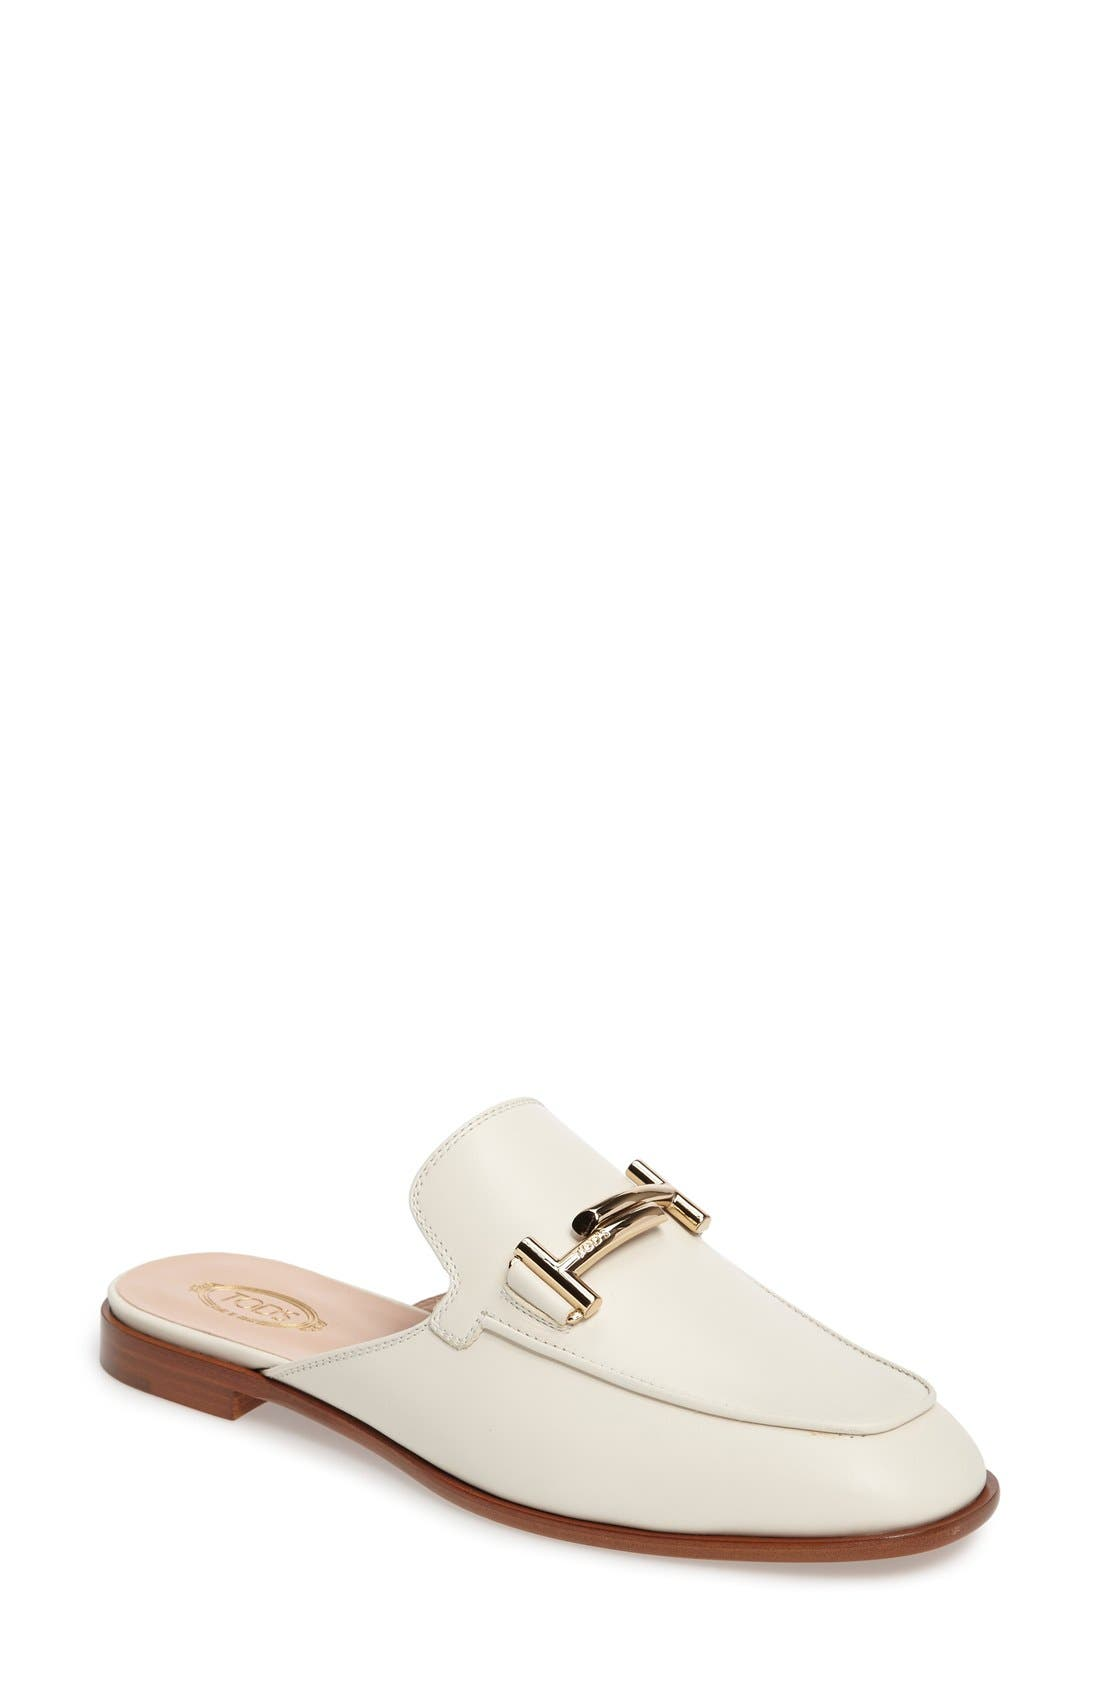 Double T Mule,                         Main,                         color, White